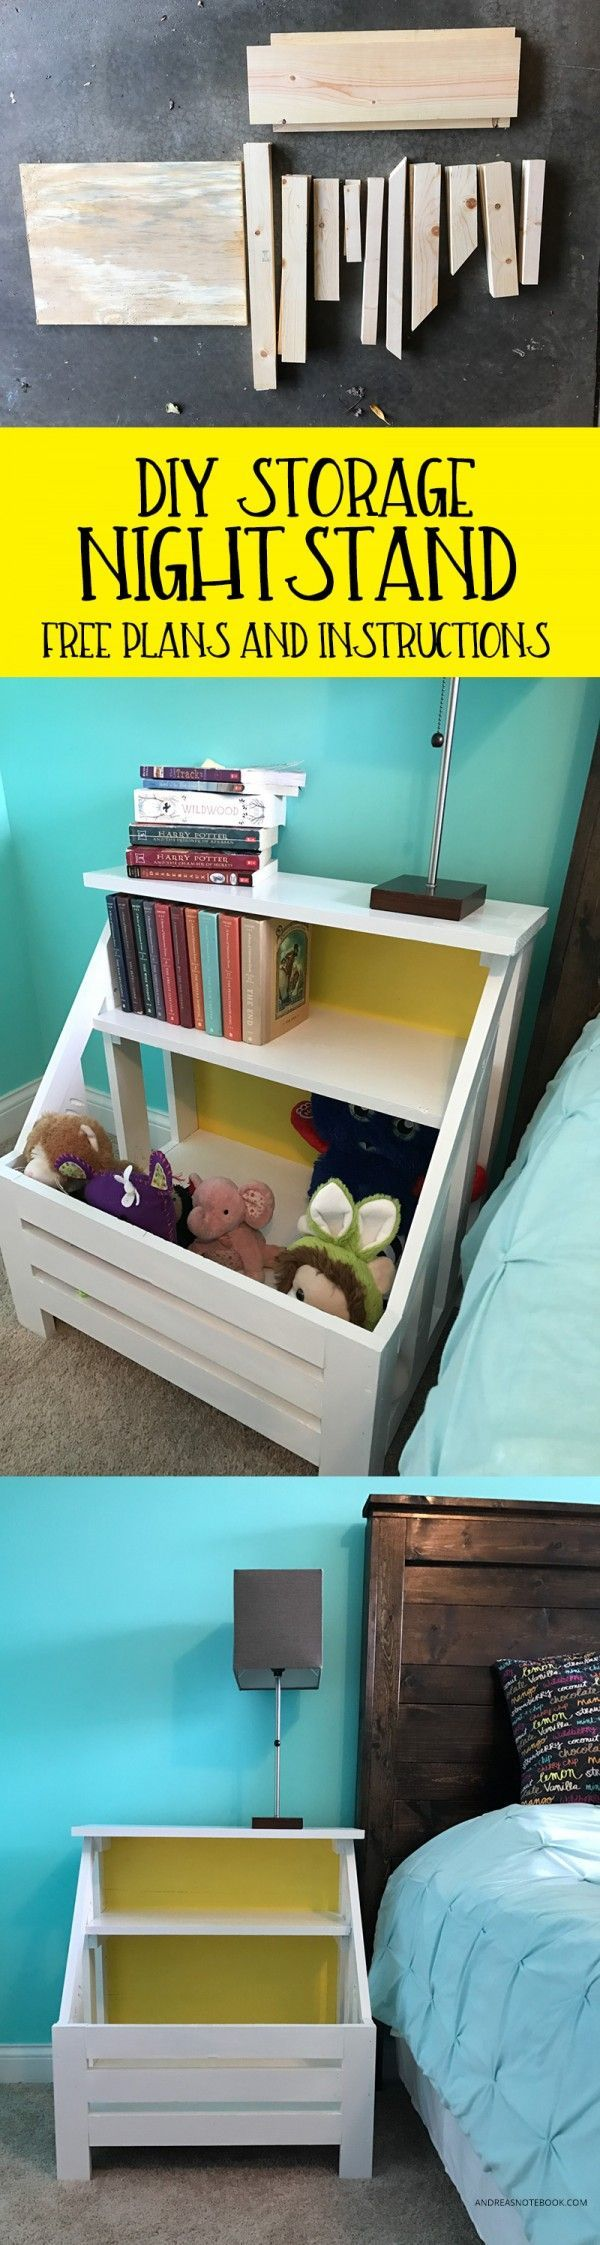 Unique detachable side rail with dear kids letter idea feat cool - 12 Easy Diy Nightstands You Can Actually Build Yourself